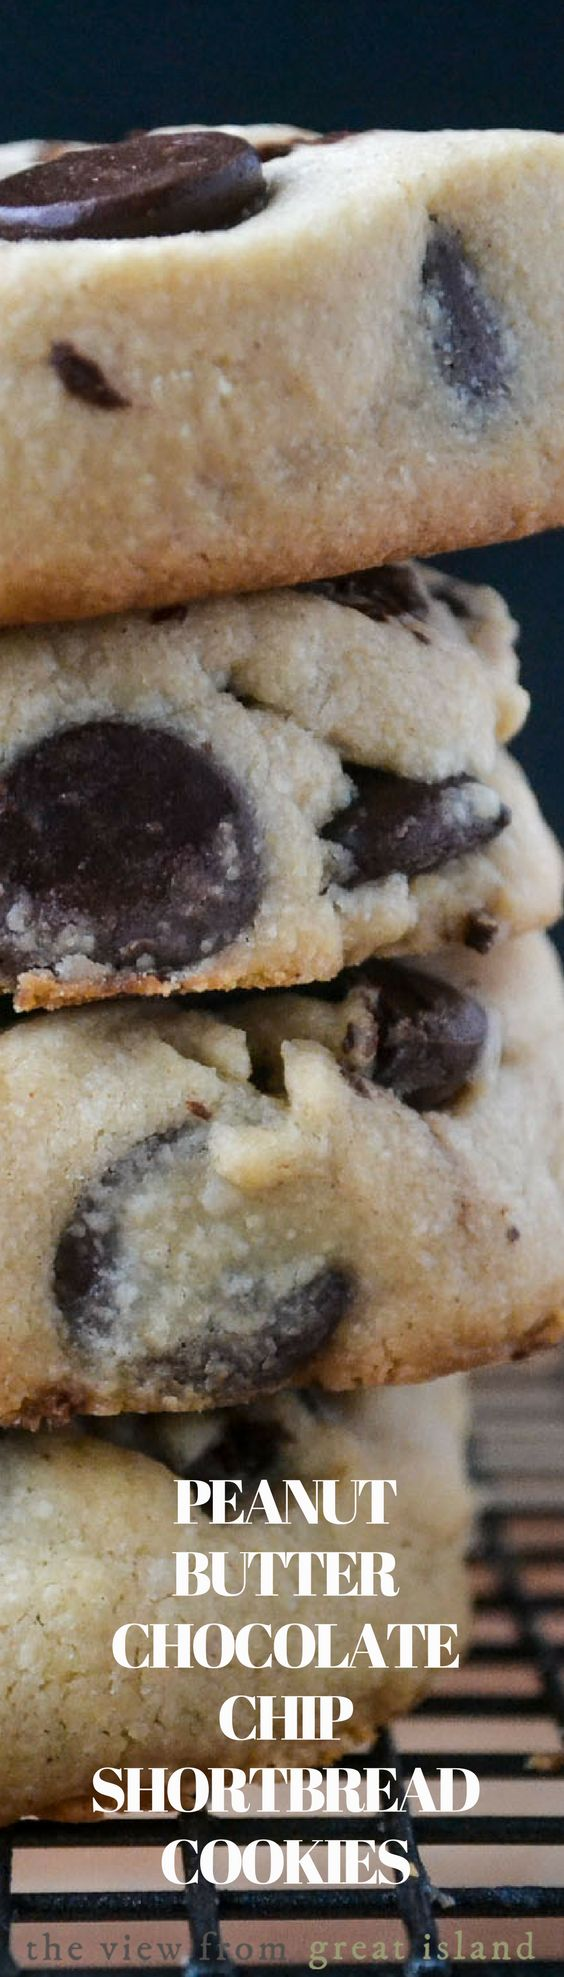 Peanut Butter Chocolate Chip Shortbread Cookies are an easy to make slice and bake cookie recipe with a melt in your mouth texture, a light peanut butter flavor, and plenty of chocolate chips!